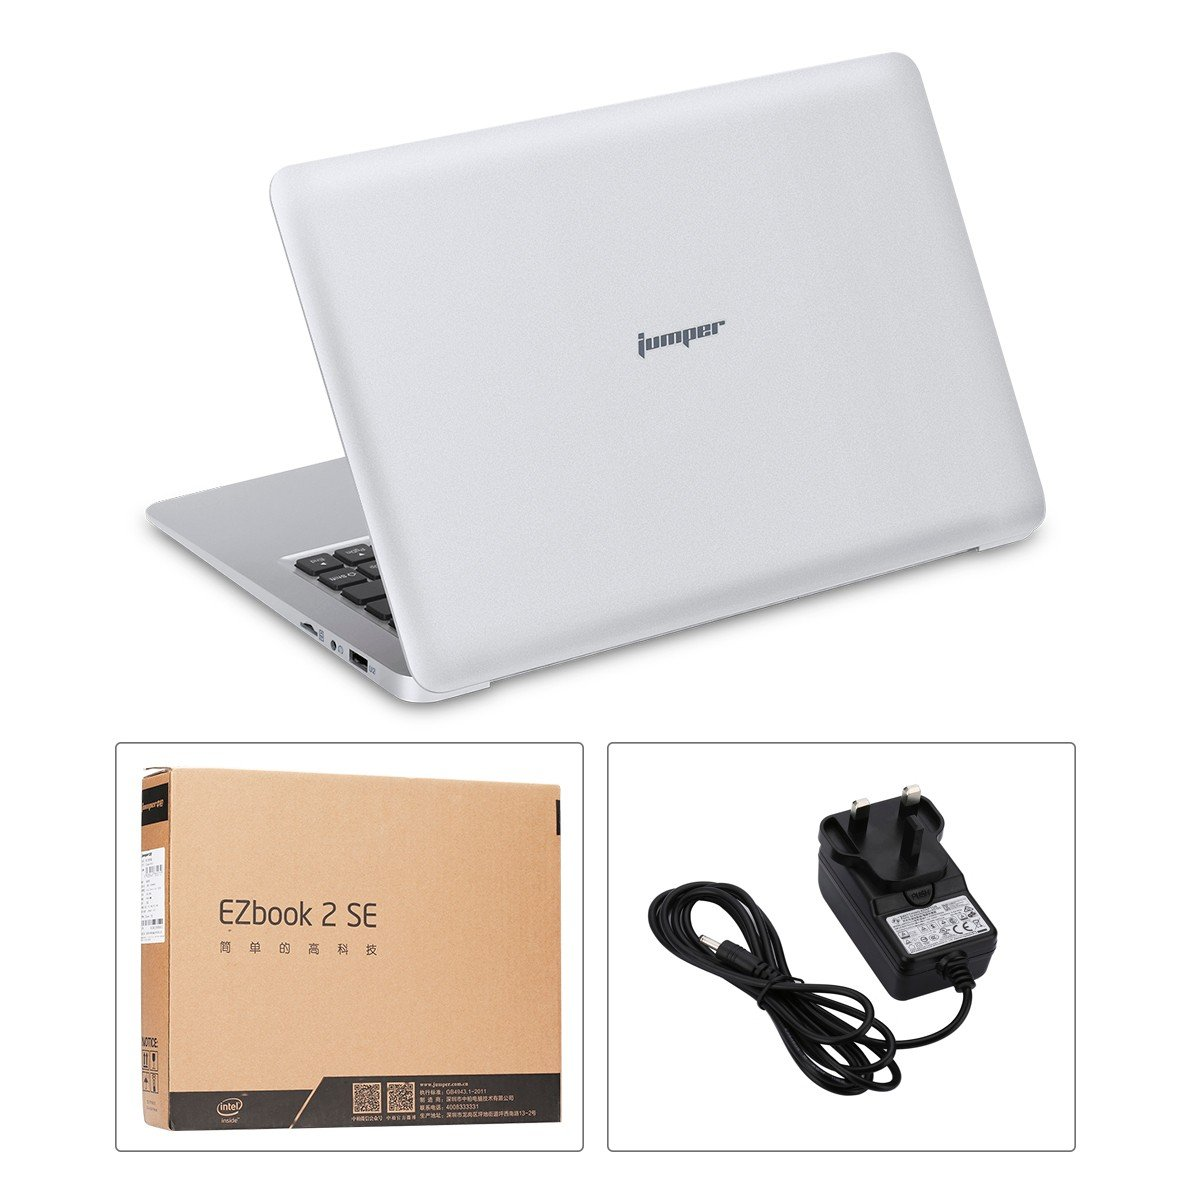 Jumper Ezbook 2se 12 Windows10 Ultraboo Buy Online In Japan At Desertcart